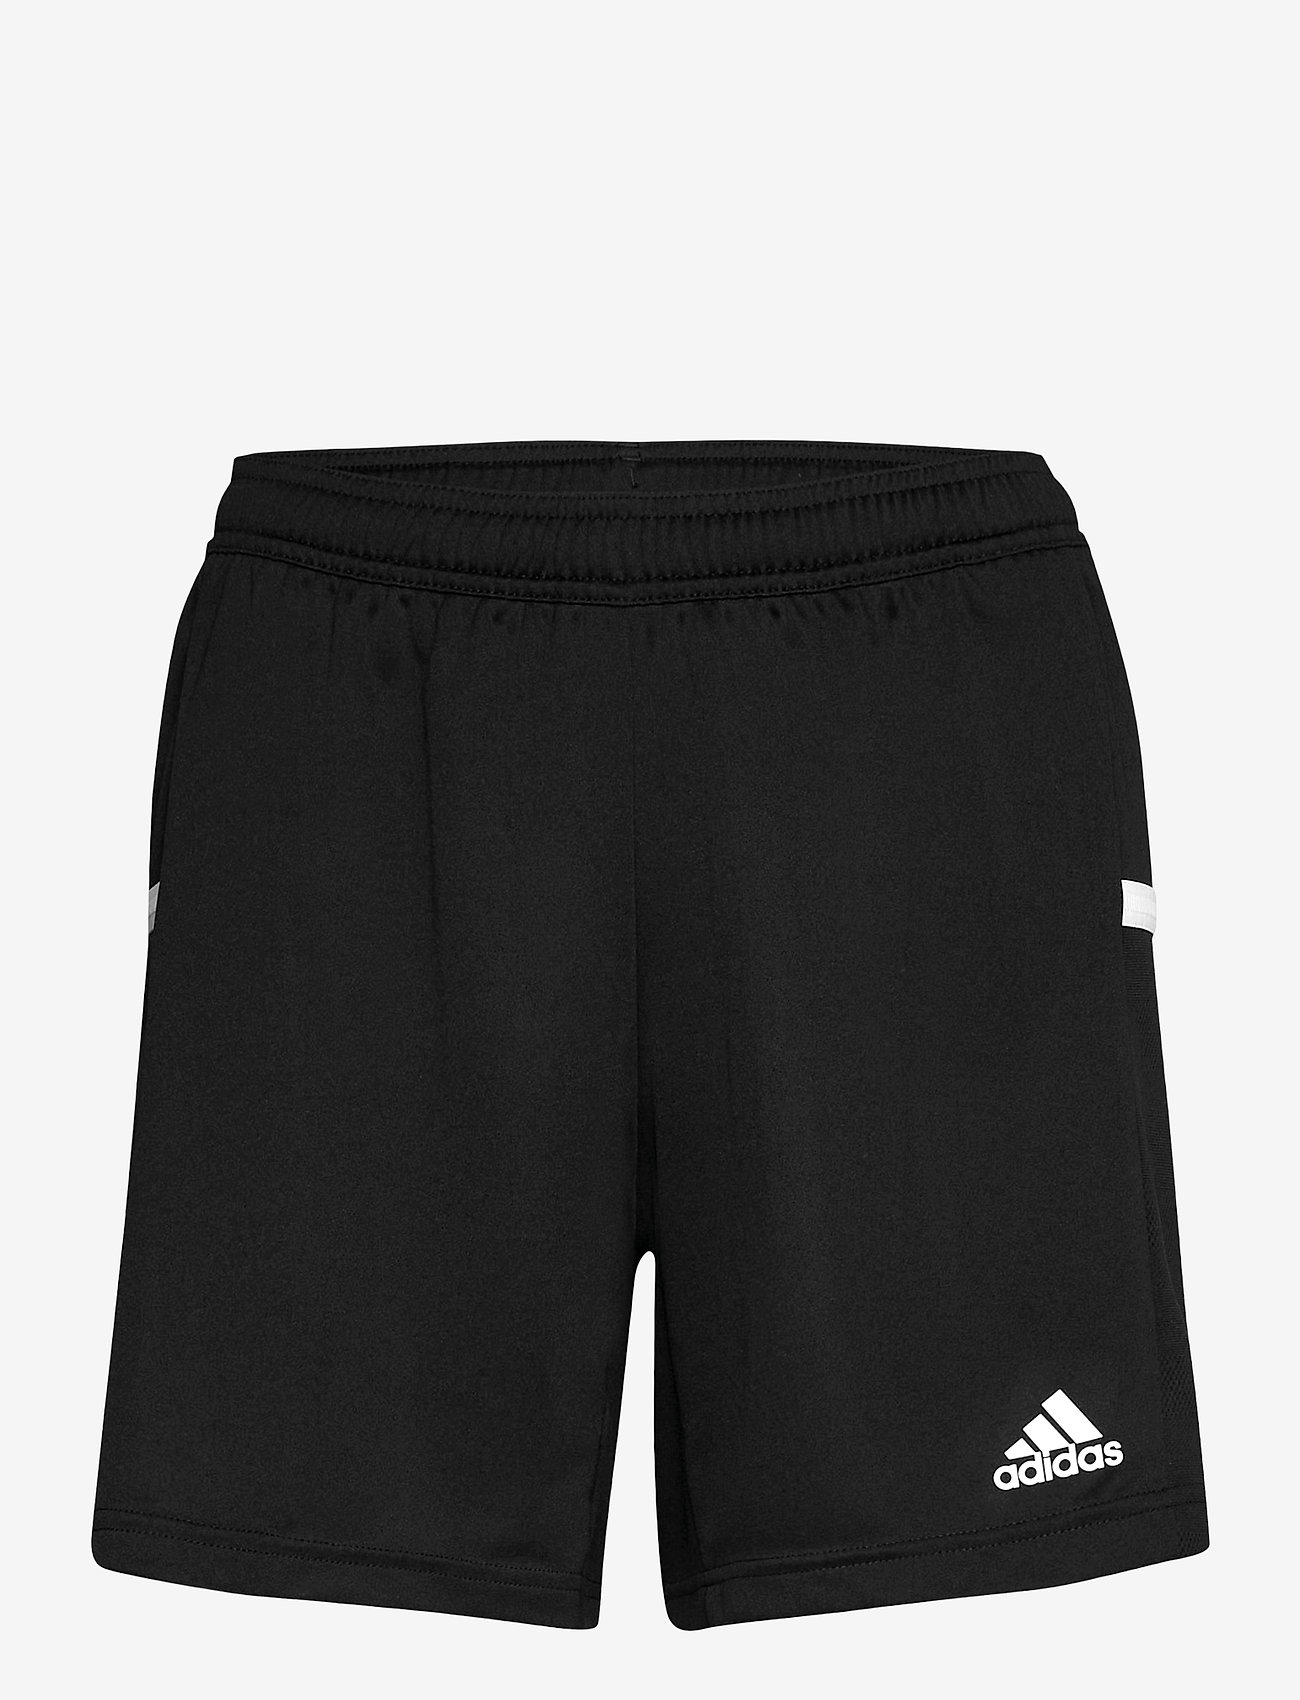 adidas Performance - Team 19 Shorts W - træningsshorts - black/white - 0